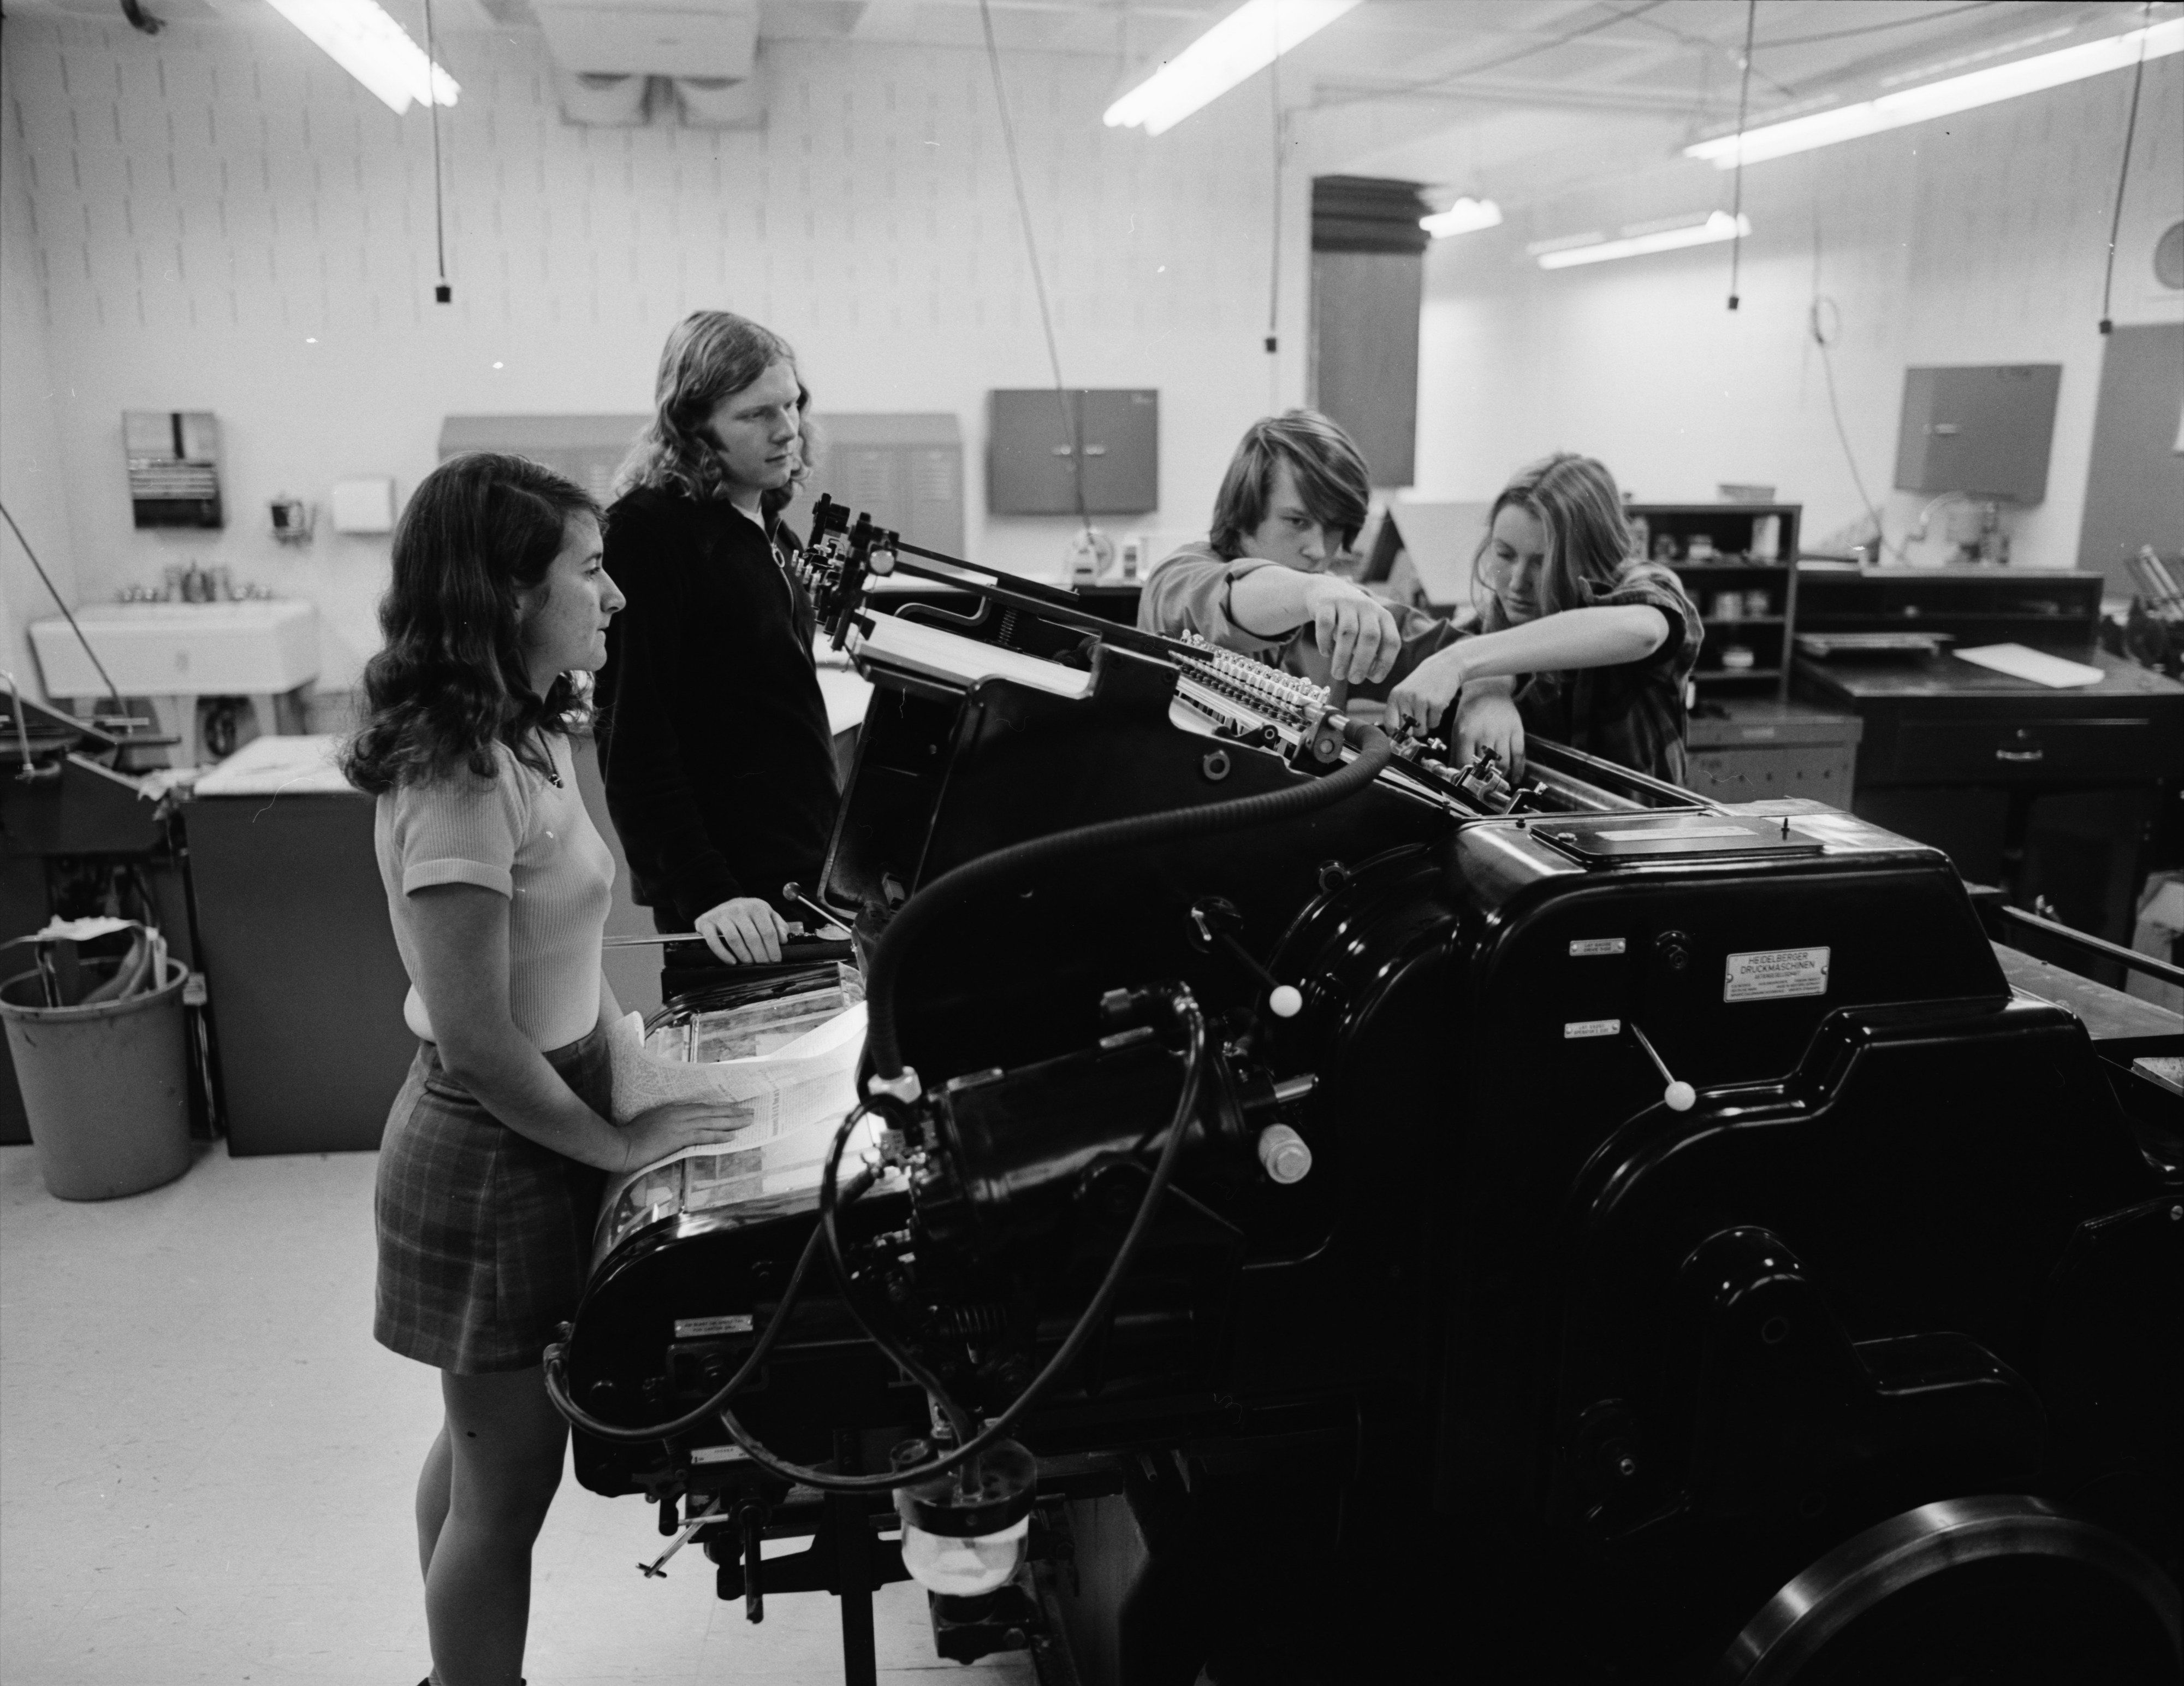 Students Preparing the Press for Printing in Publications Production Class at Huron High School, December 1971 image